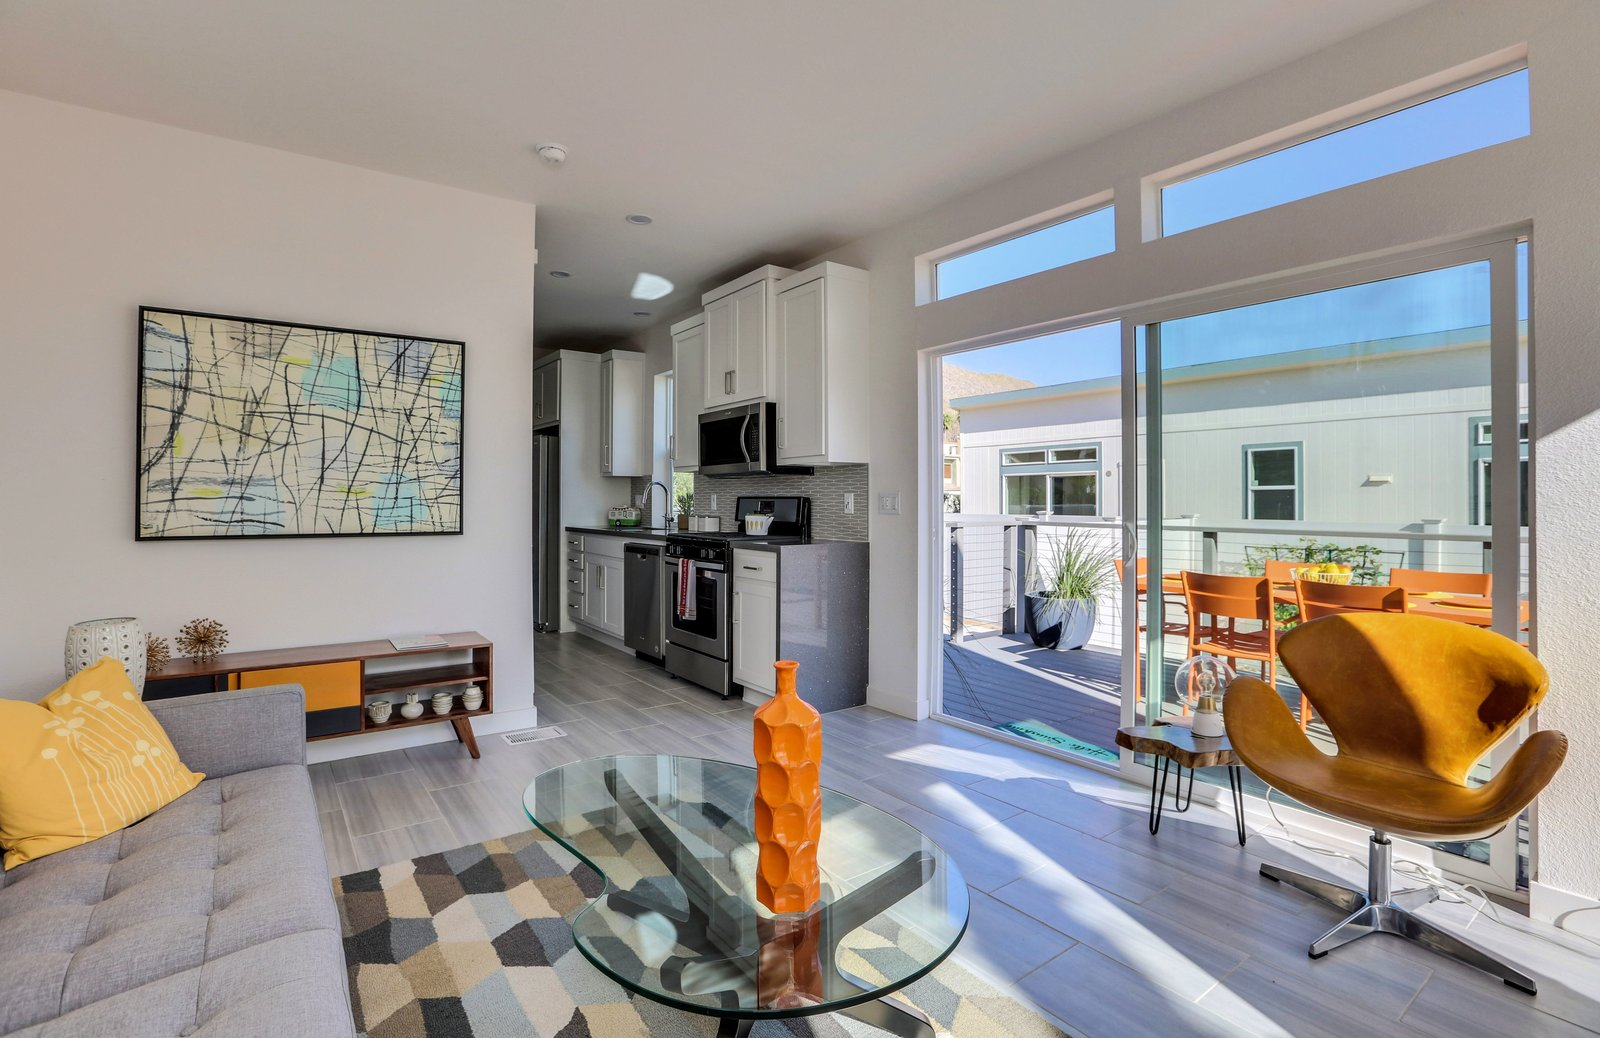 Slider to deck from Living Room -  Palm Canyon Mobile Club  Tiny Homes in Palm Springs